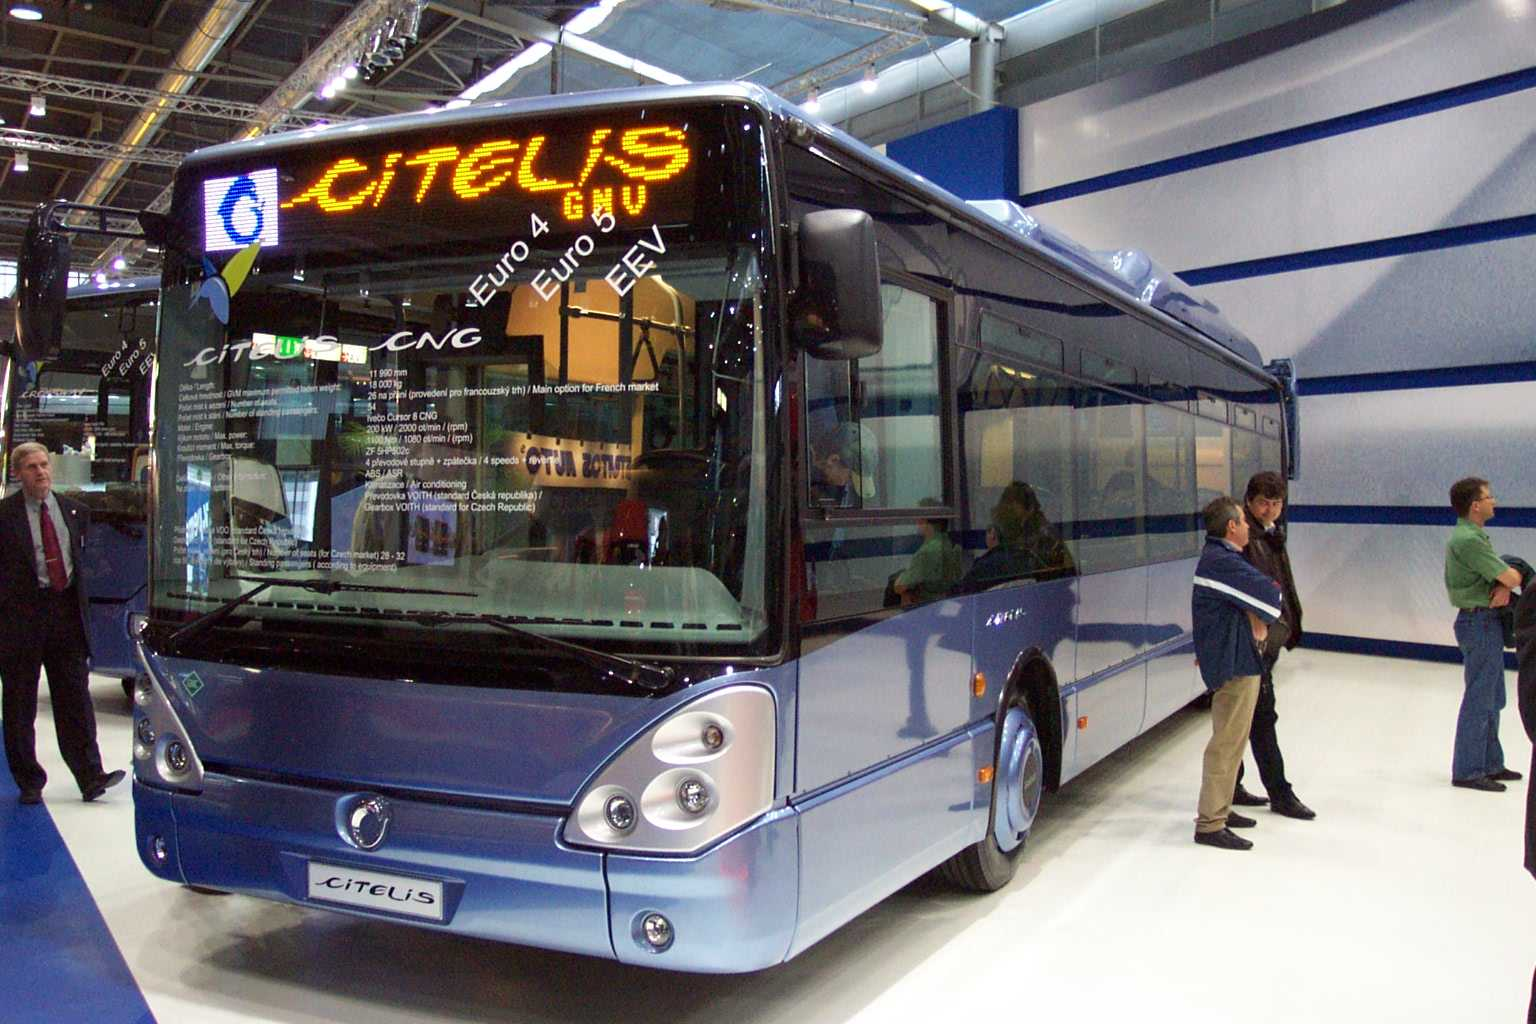 Irisbus citelis photo - 2